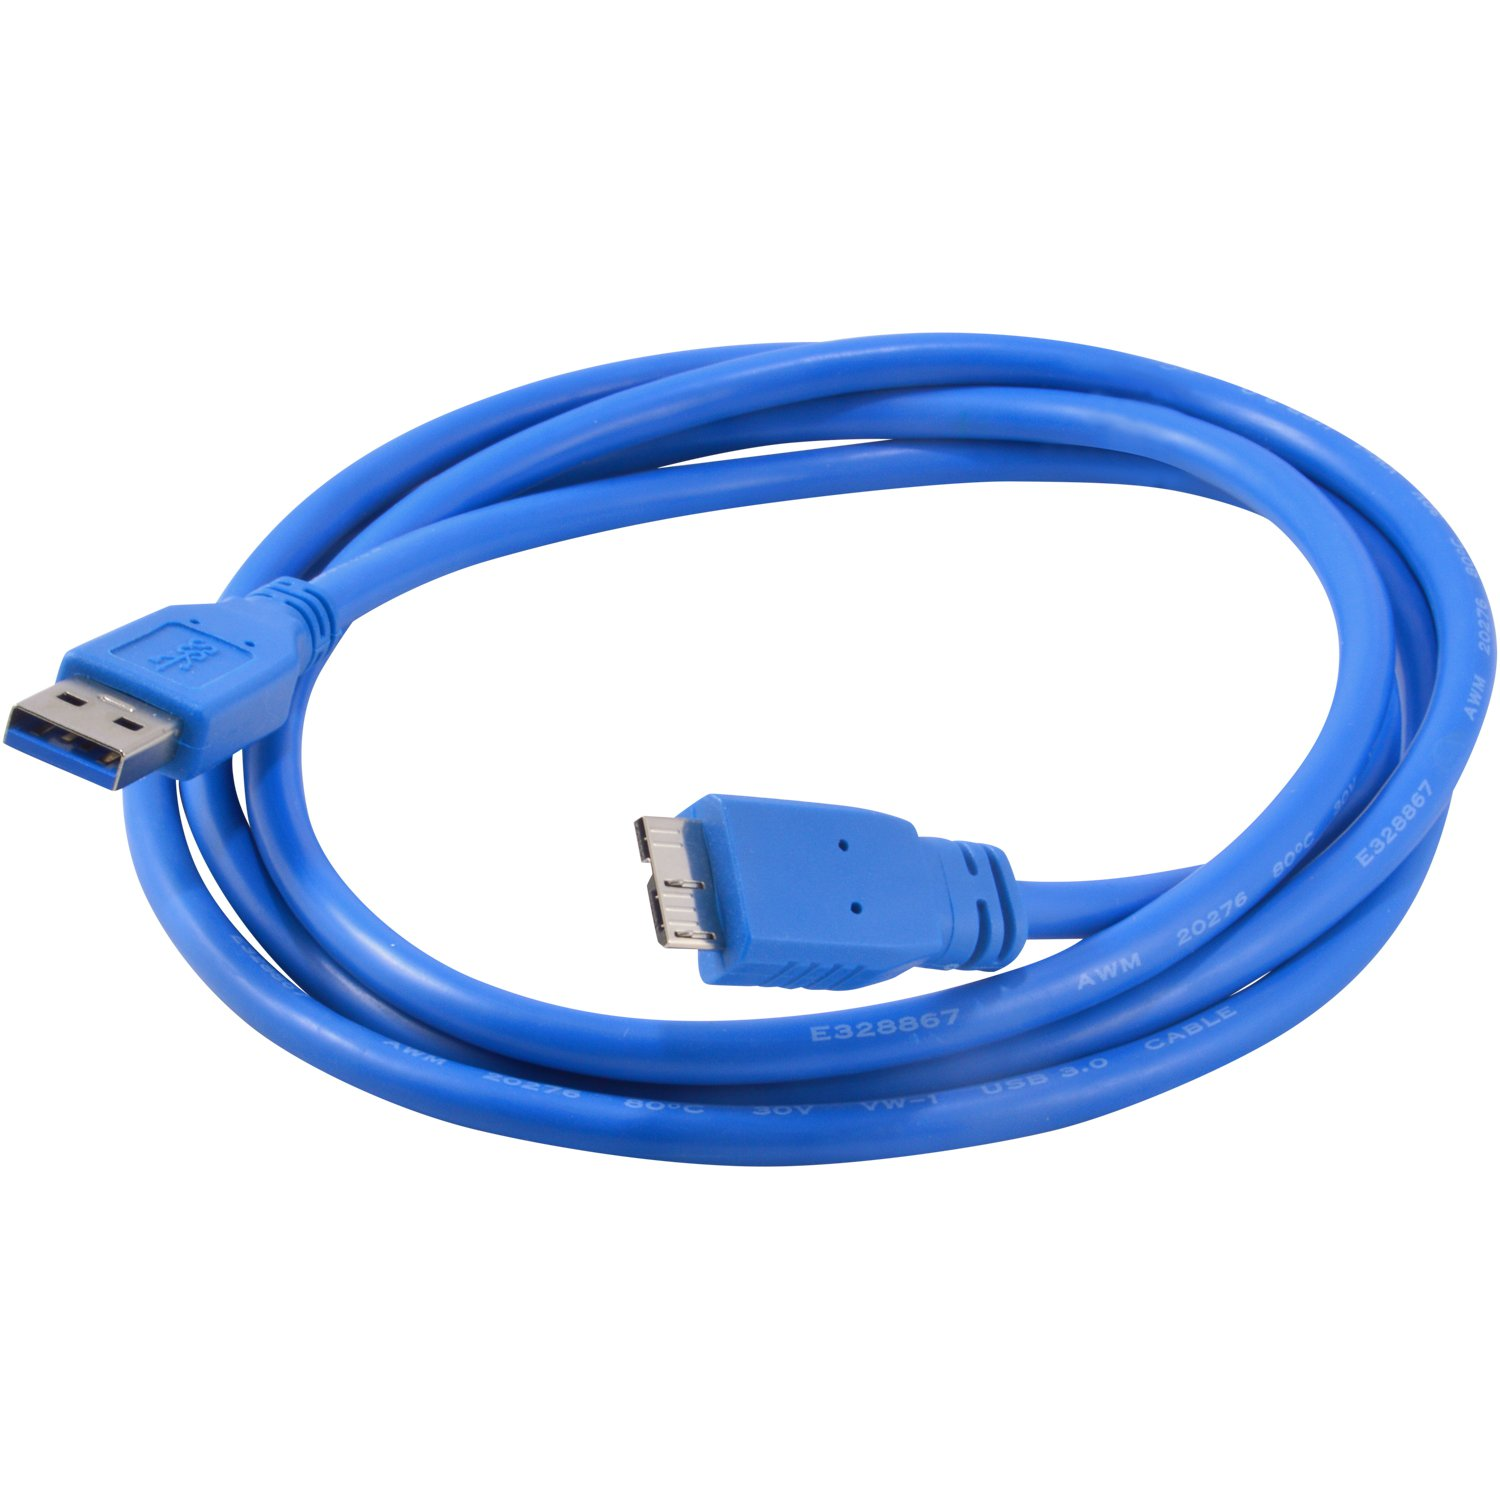 5X USB 3.0 A Male to Micro B Cable for External HDD / Tablet / Smartphone, Blue